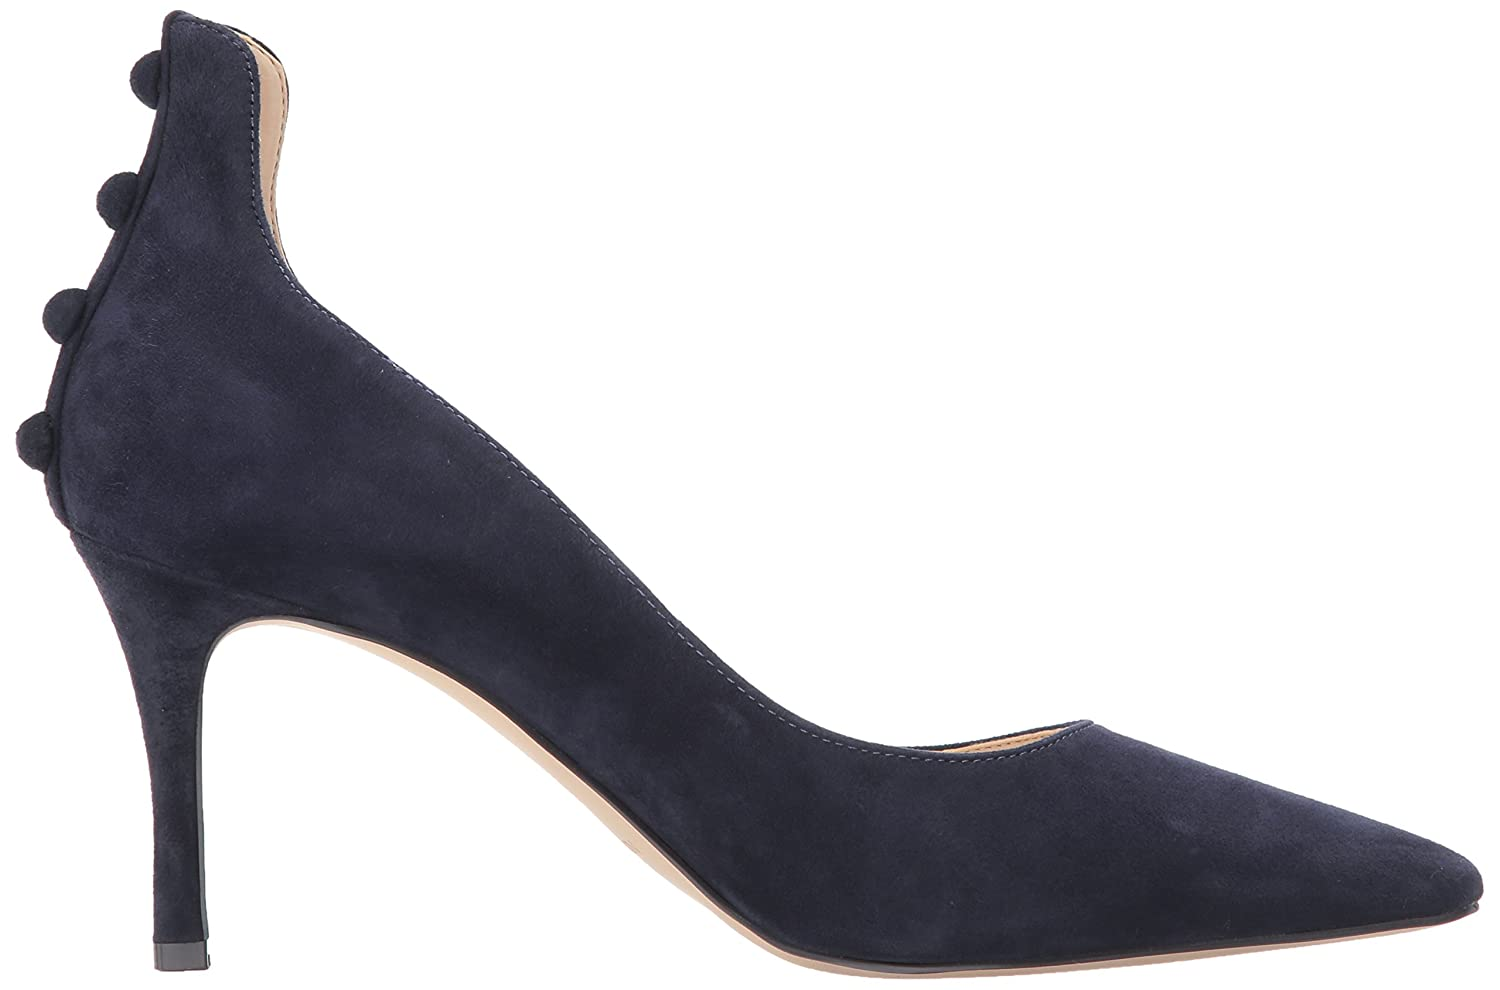 Nine B01MUWLCHB West Women's Maqui Pump B01MUWLCHB Nine 7.5 B(M) US|Navy Suede eccc47